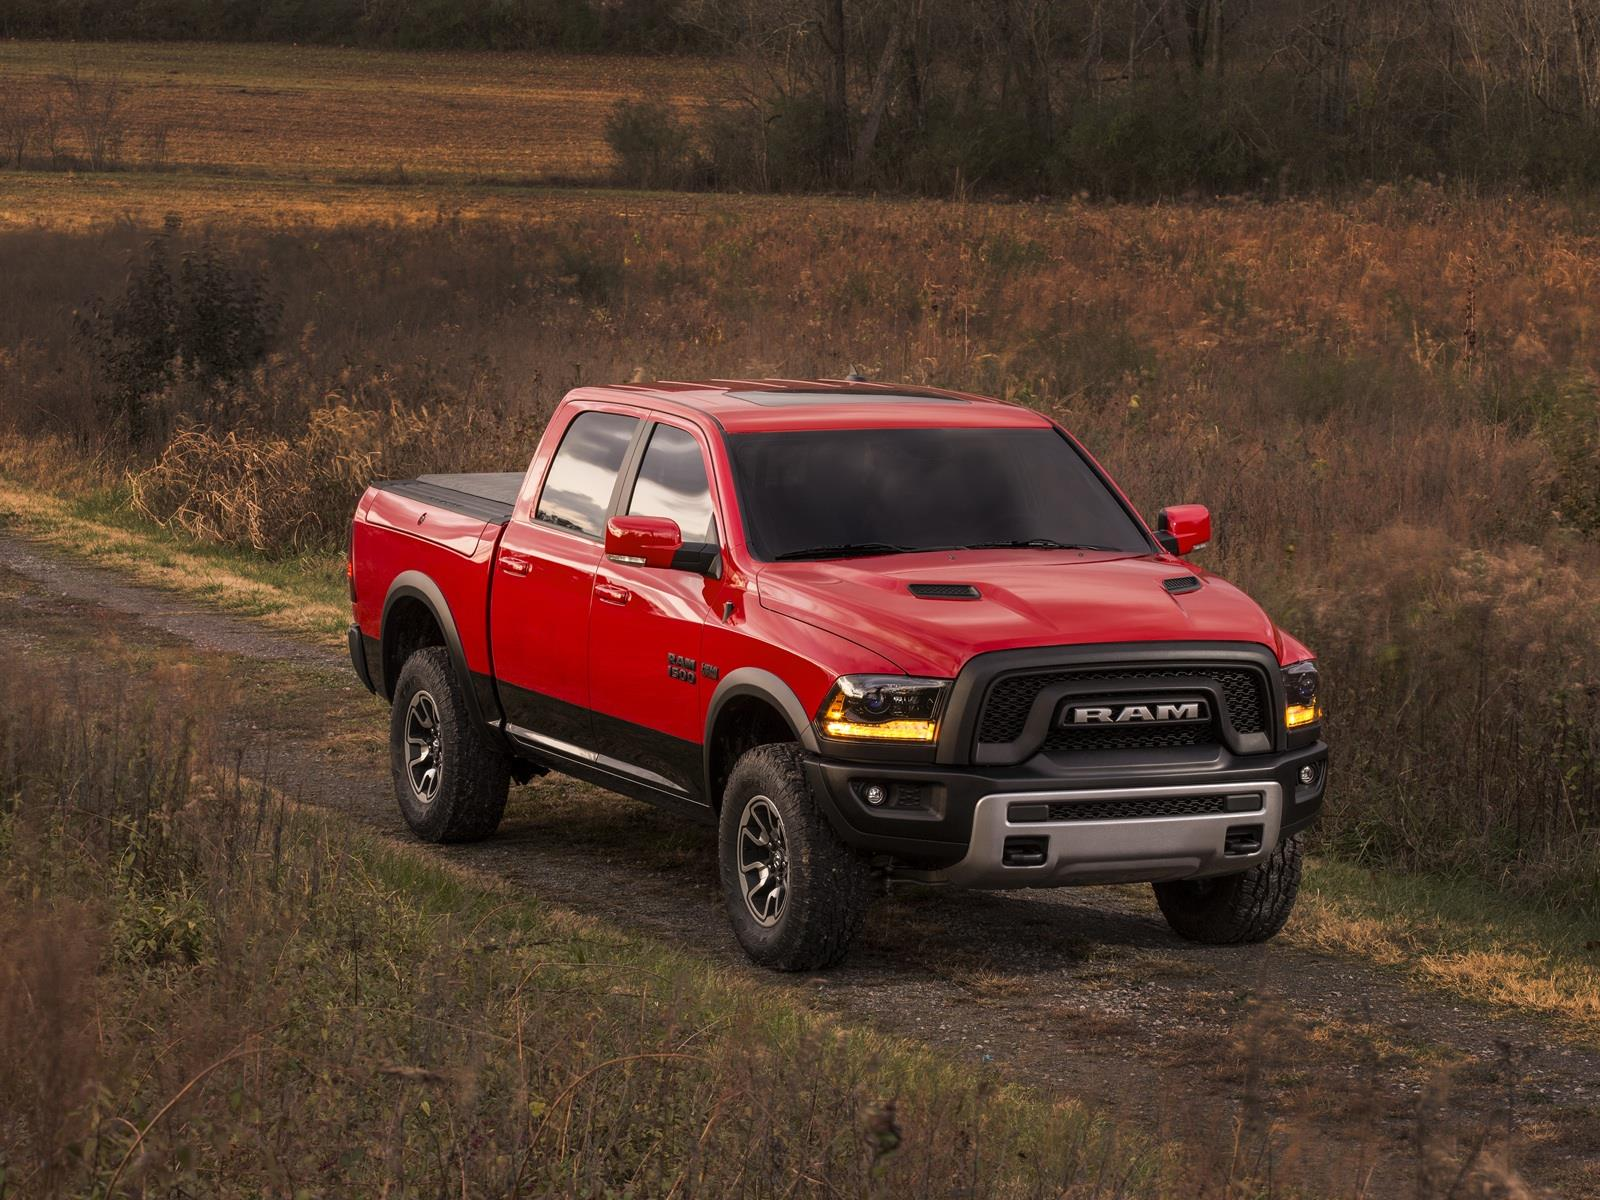 Autoshow de Detroit 2015 - Ram 1500 Rebel 2015, una pick ...